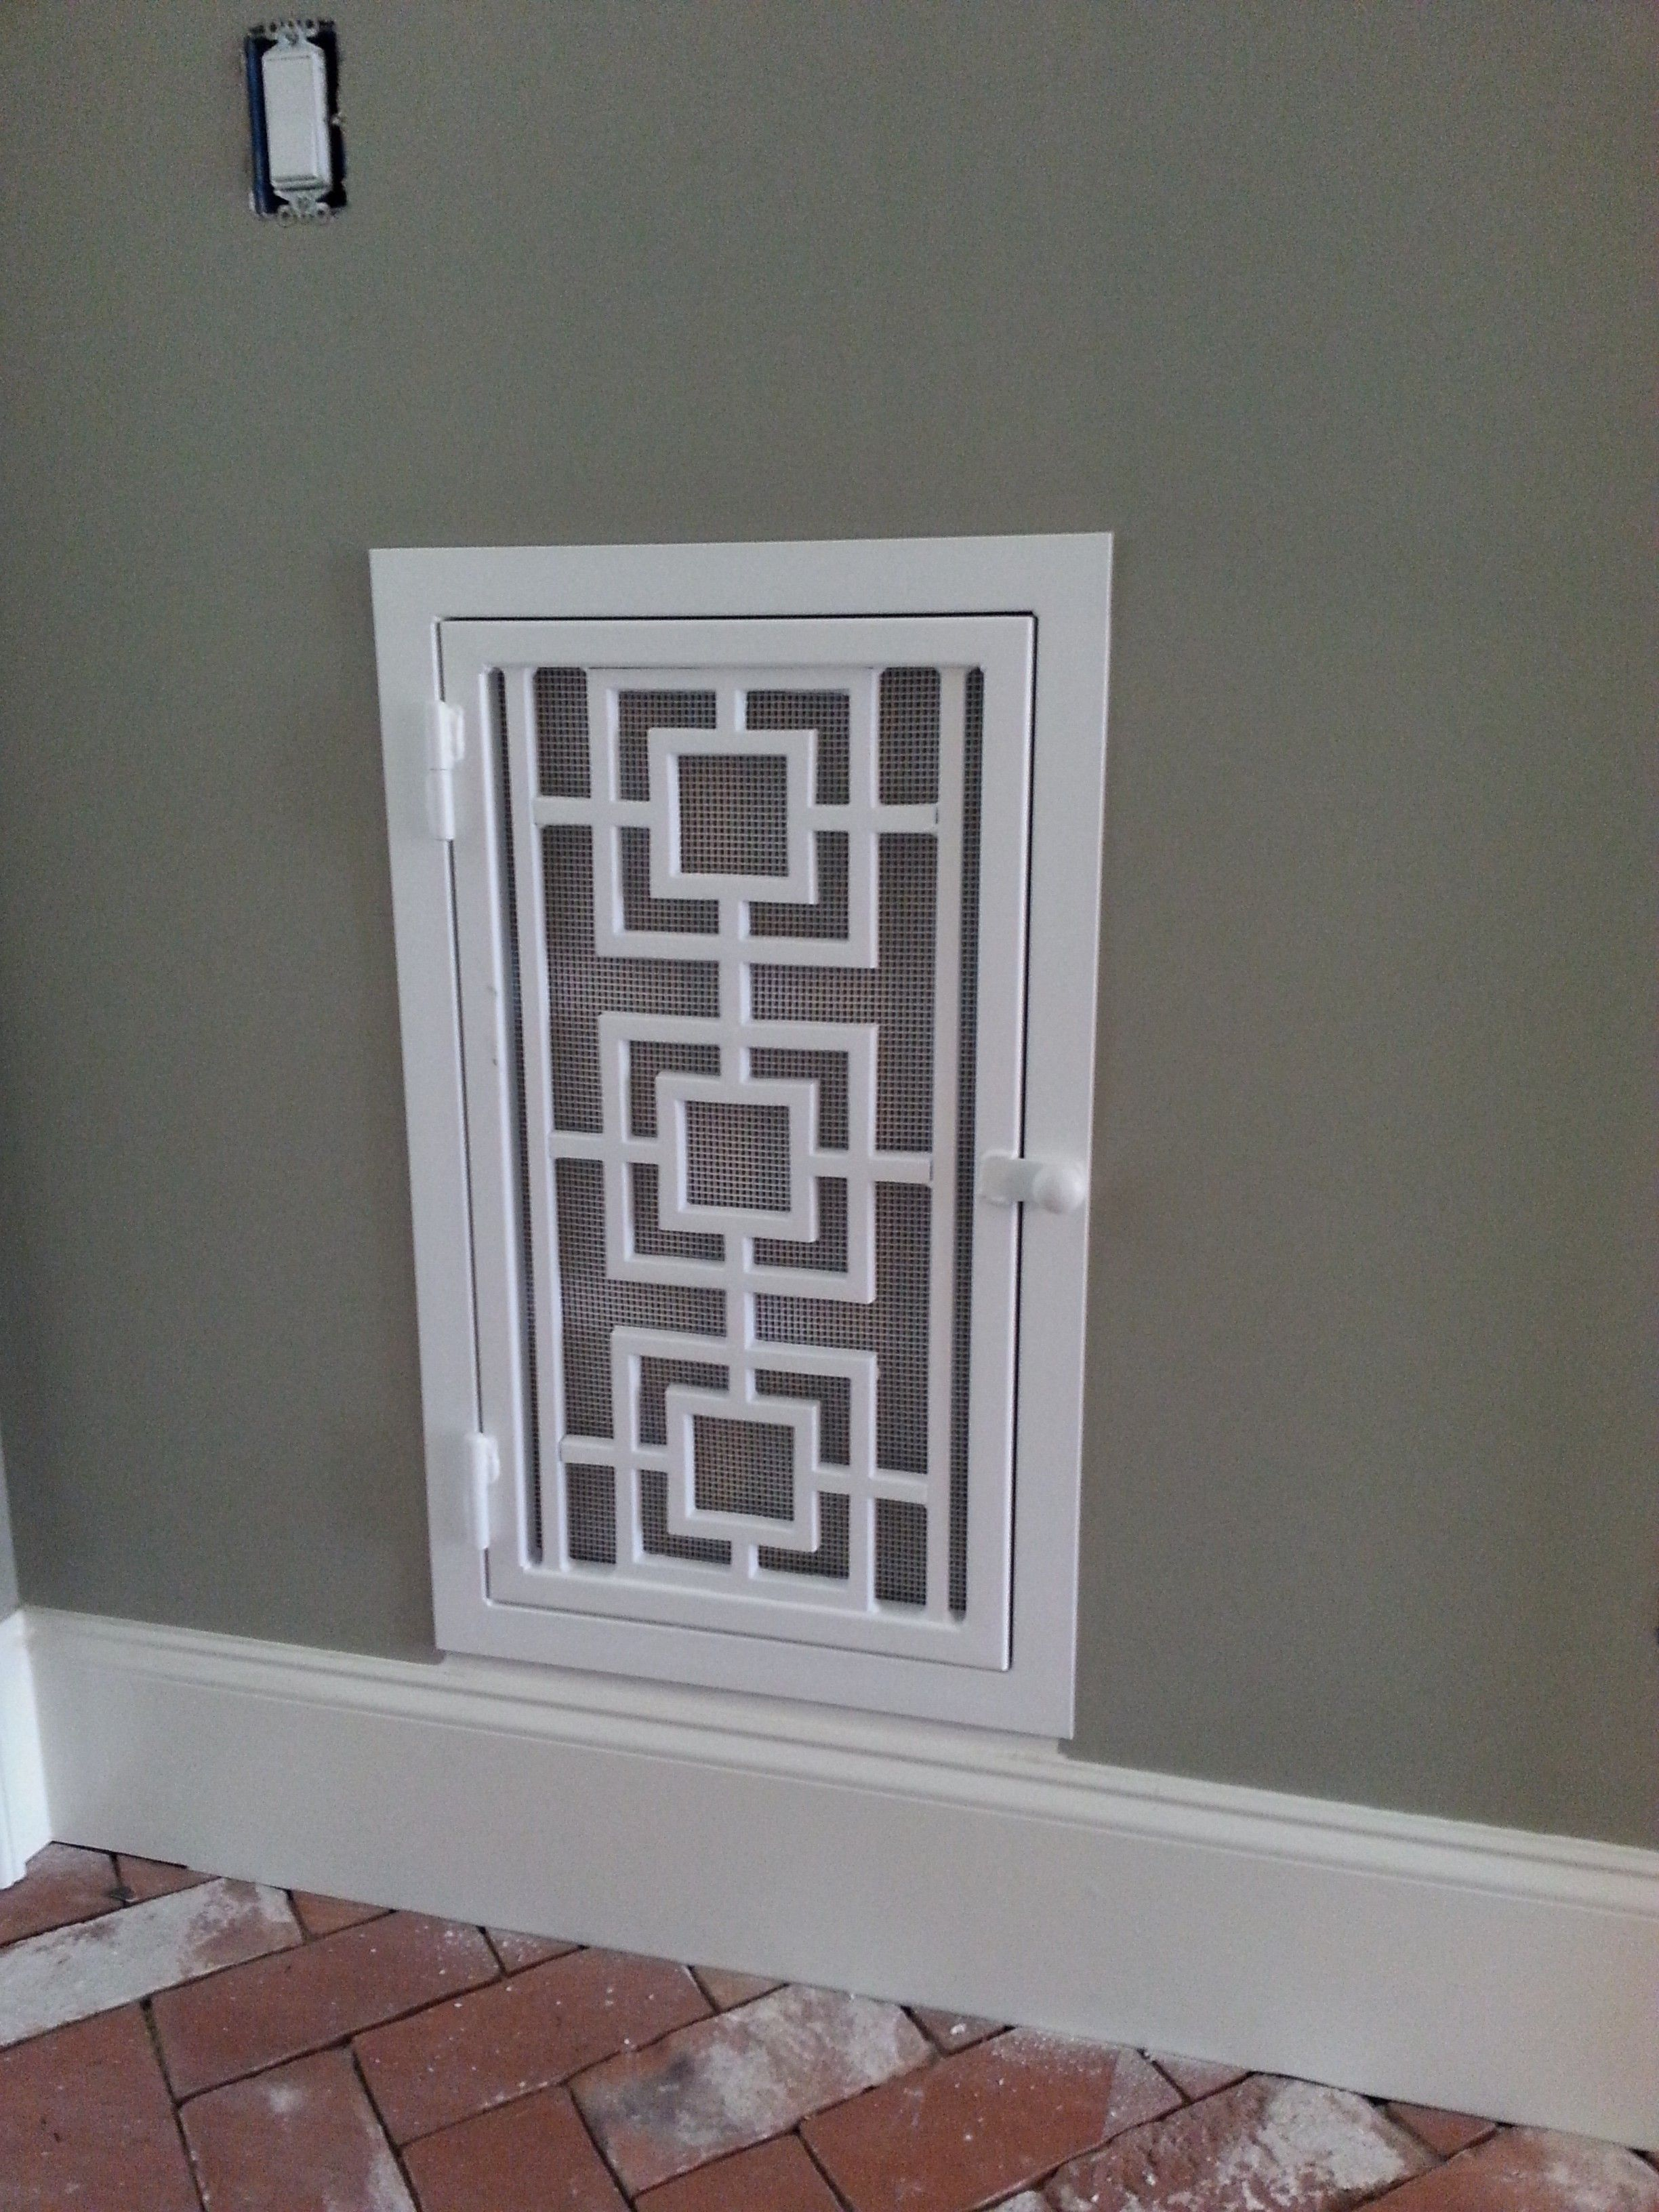 Remodel any room in 15 minutes, Fancy Vents are beautiful ...